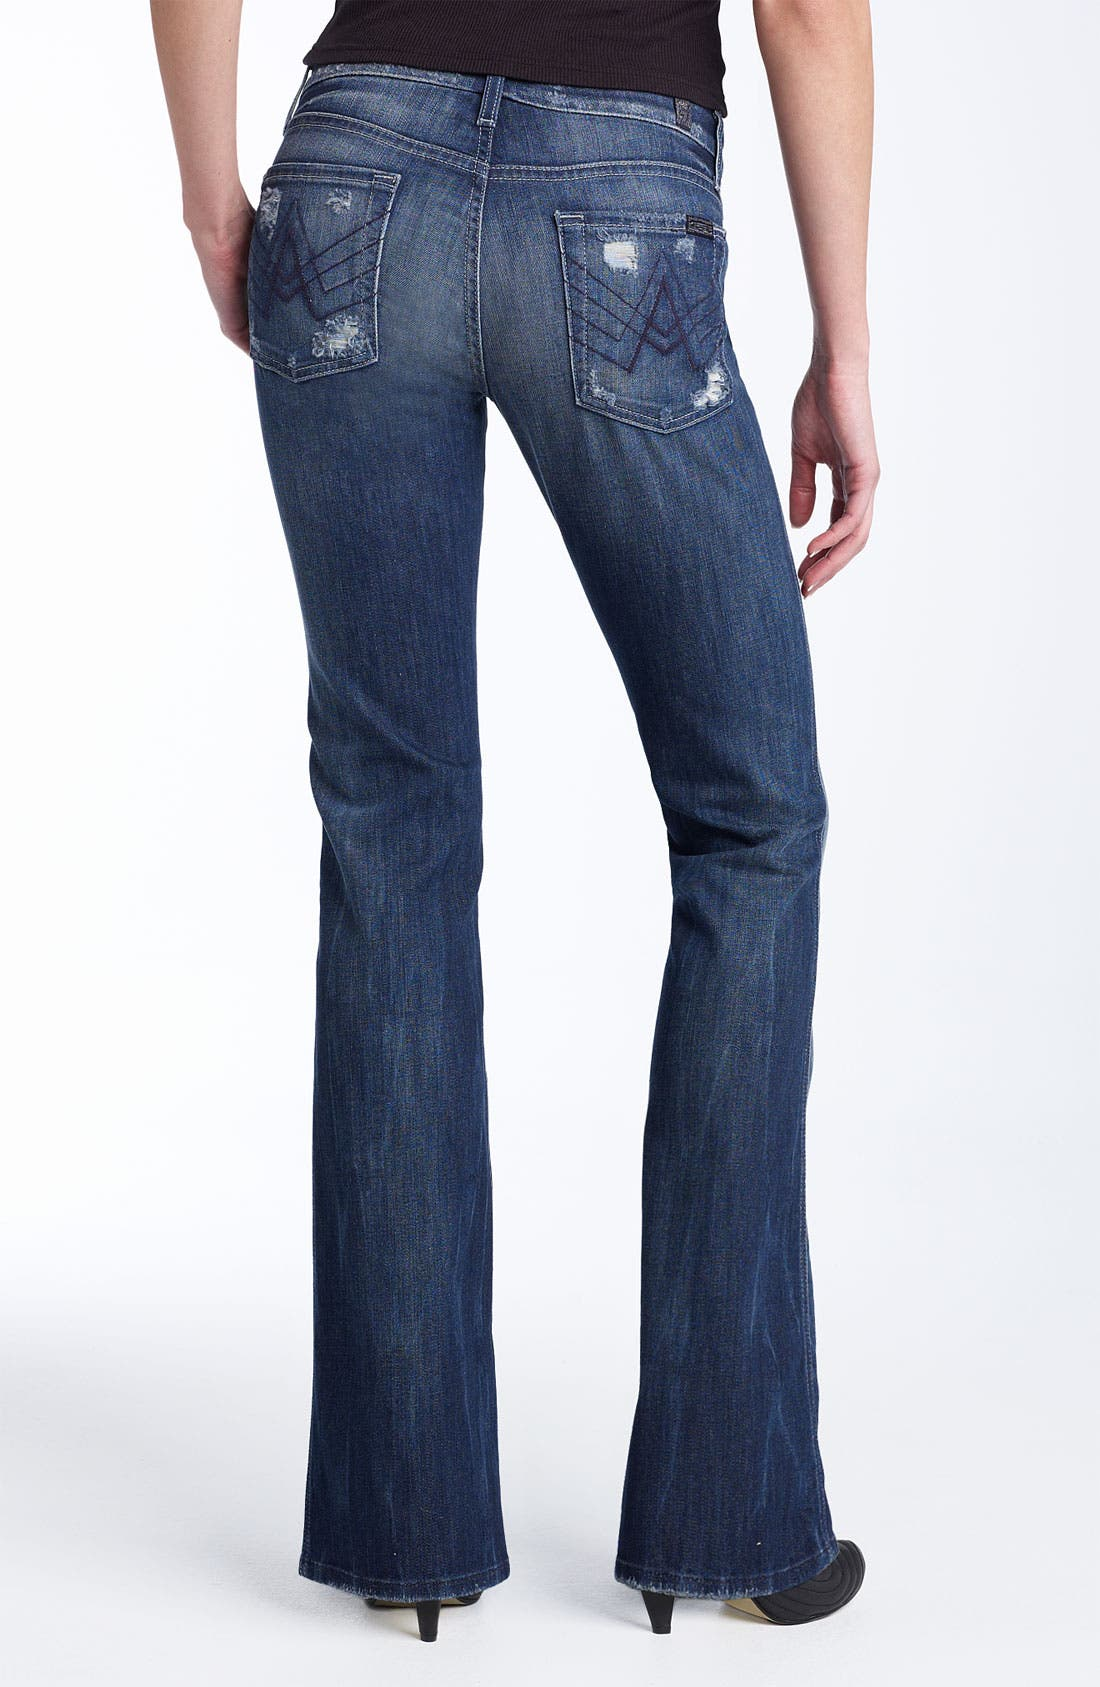 Main Image - 7 For All Mankind® 'A-Pocket' Stretch Jeans (Destroyed Beverly Glen Wash)